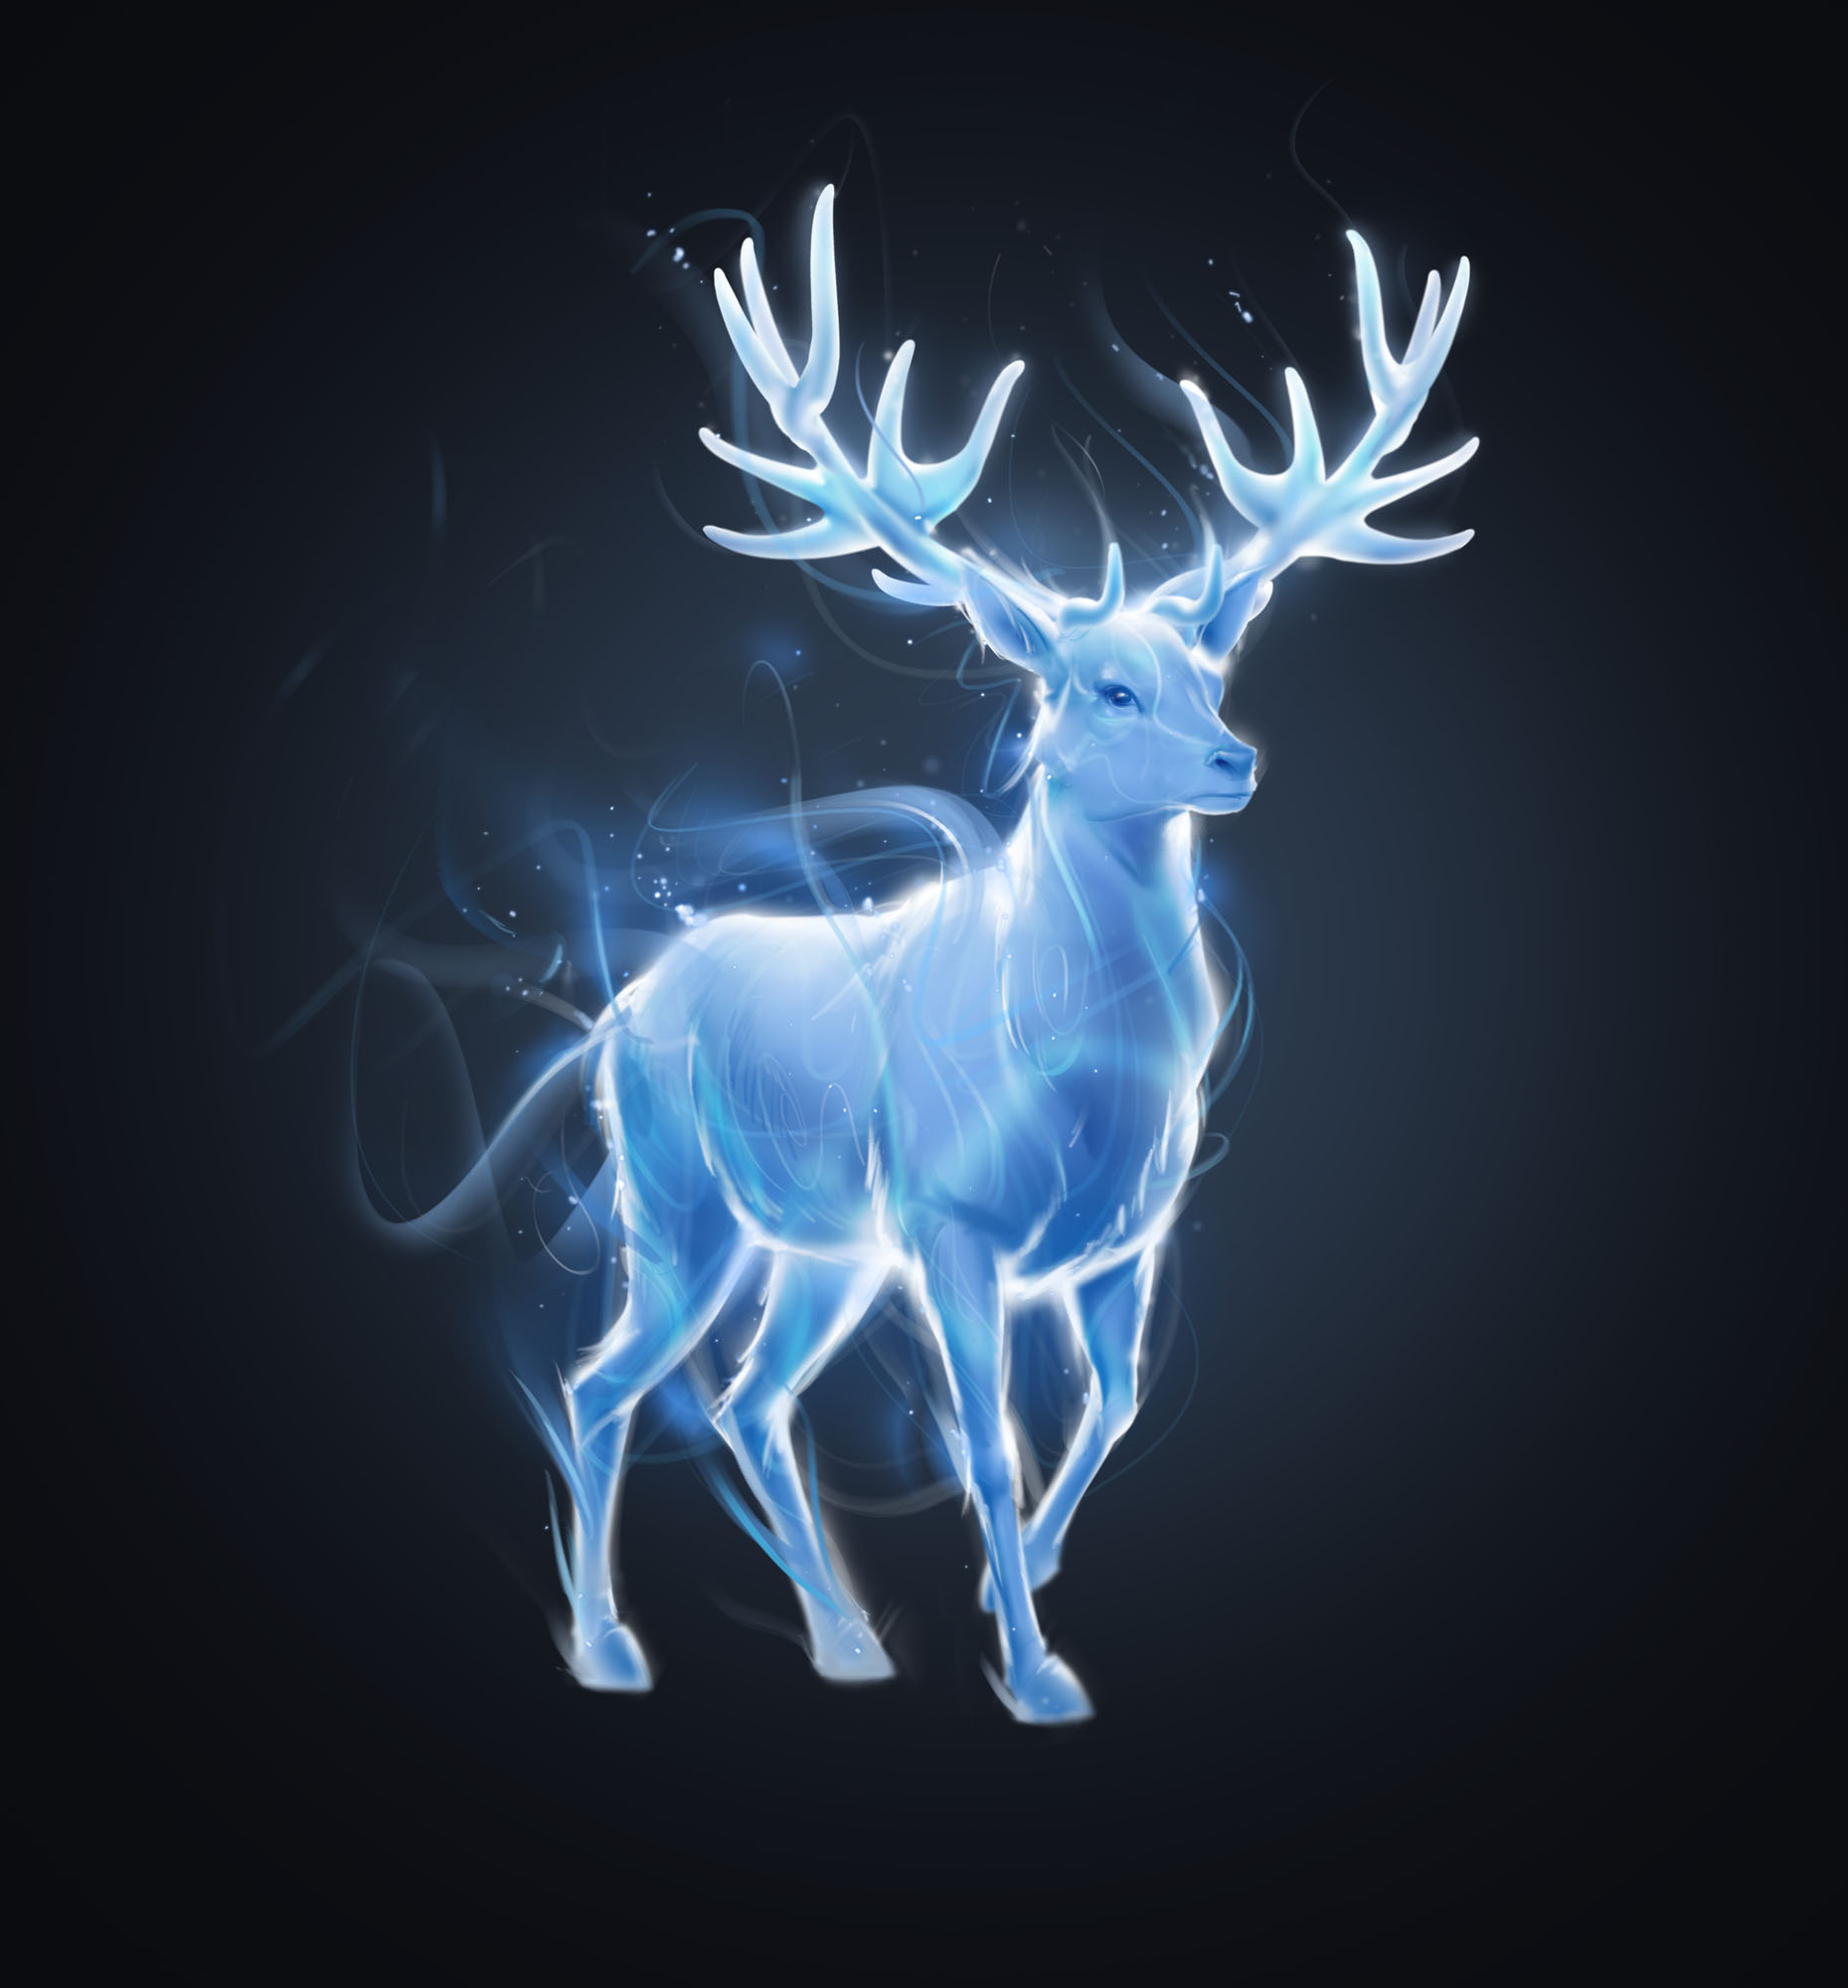 Illustration of Harry Potter's stag Patronus